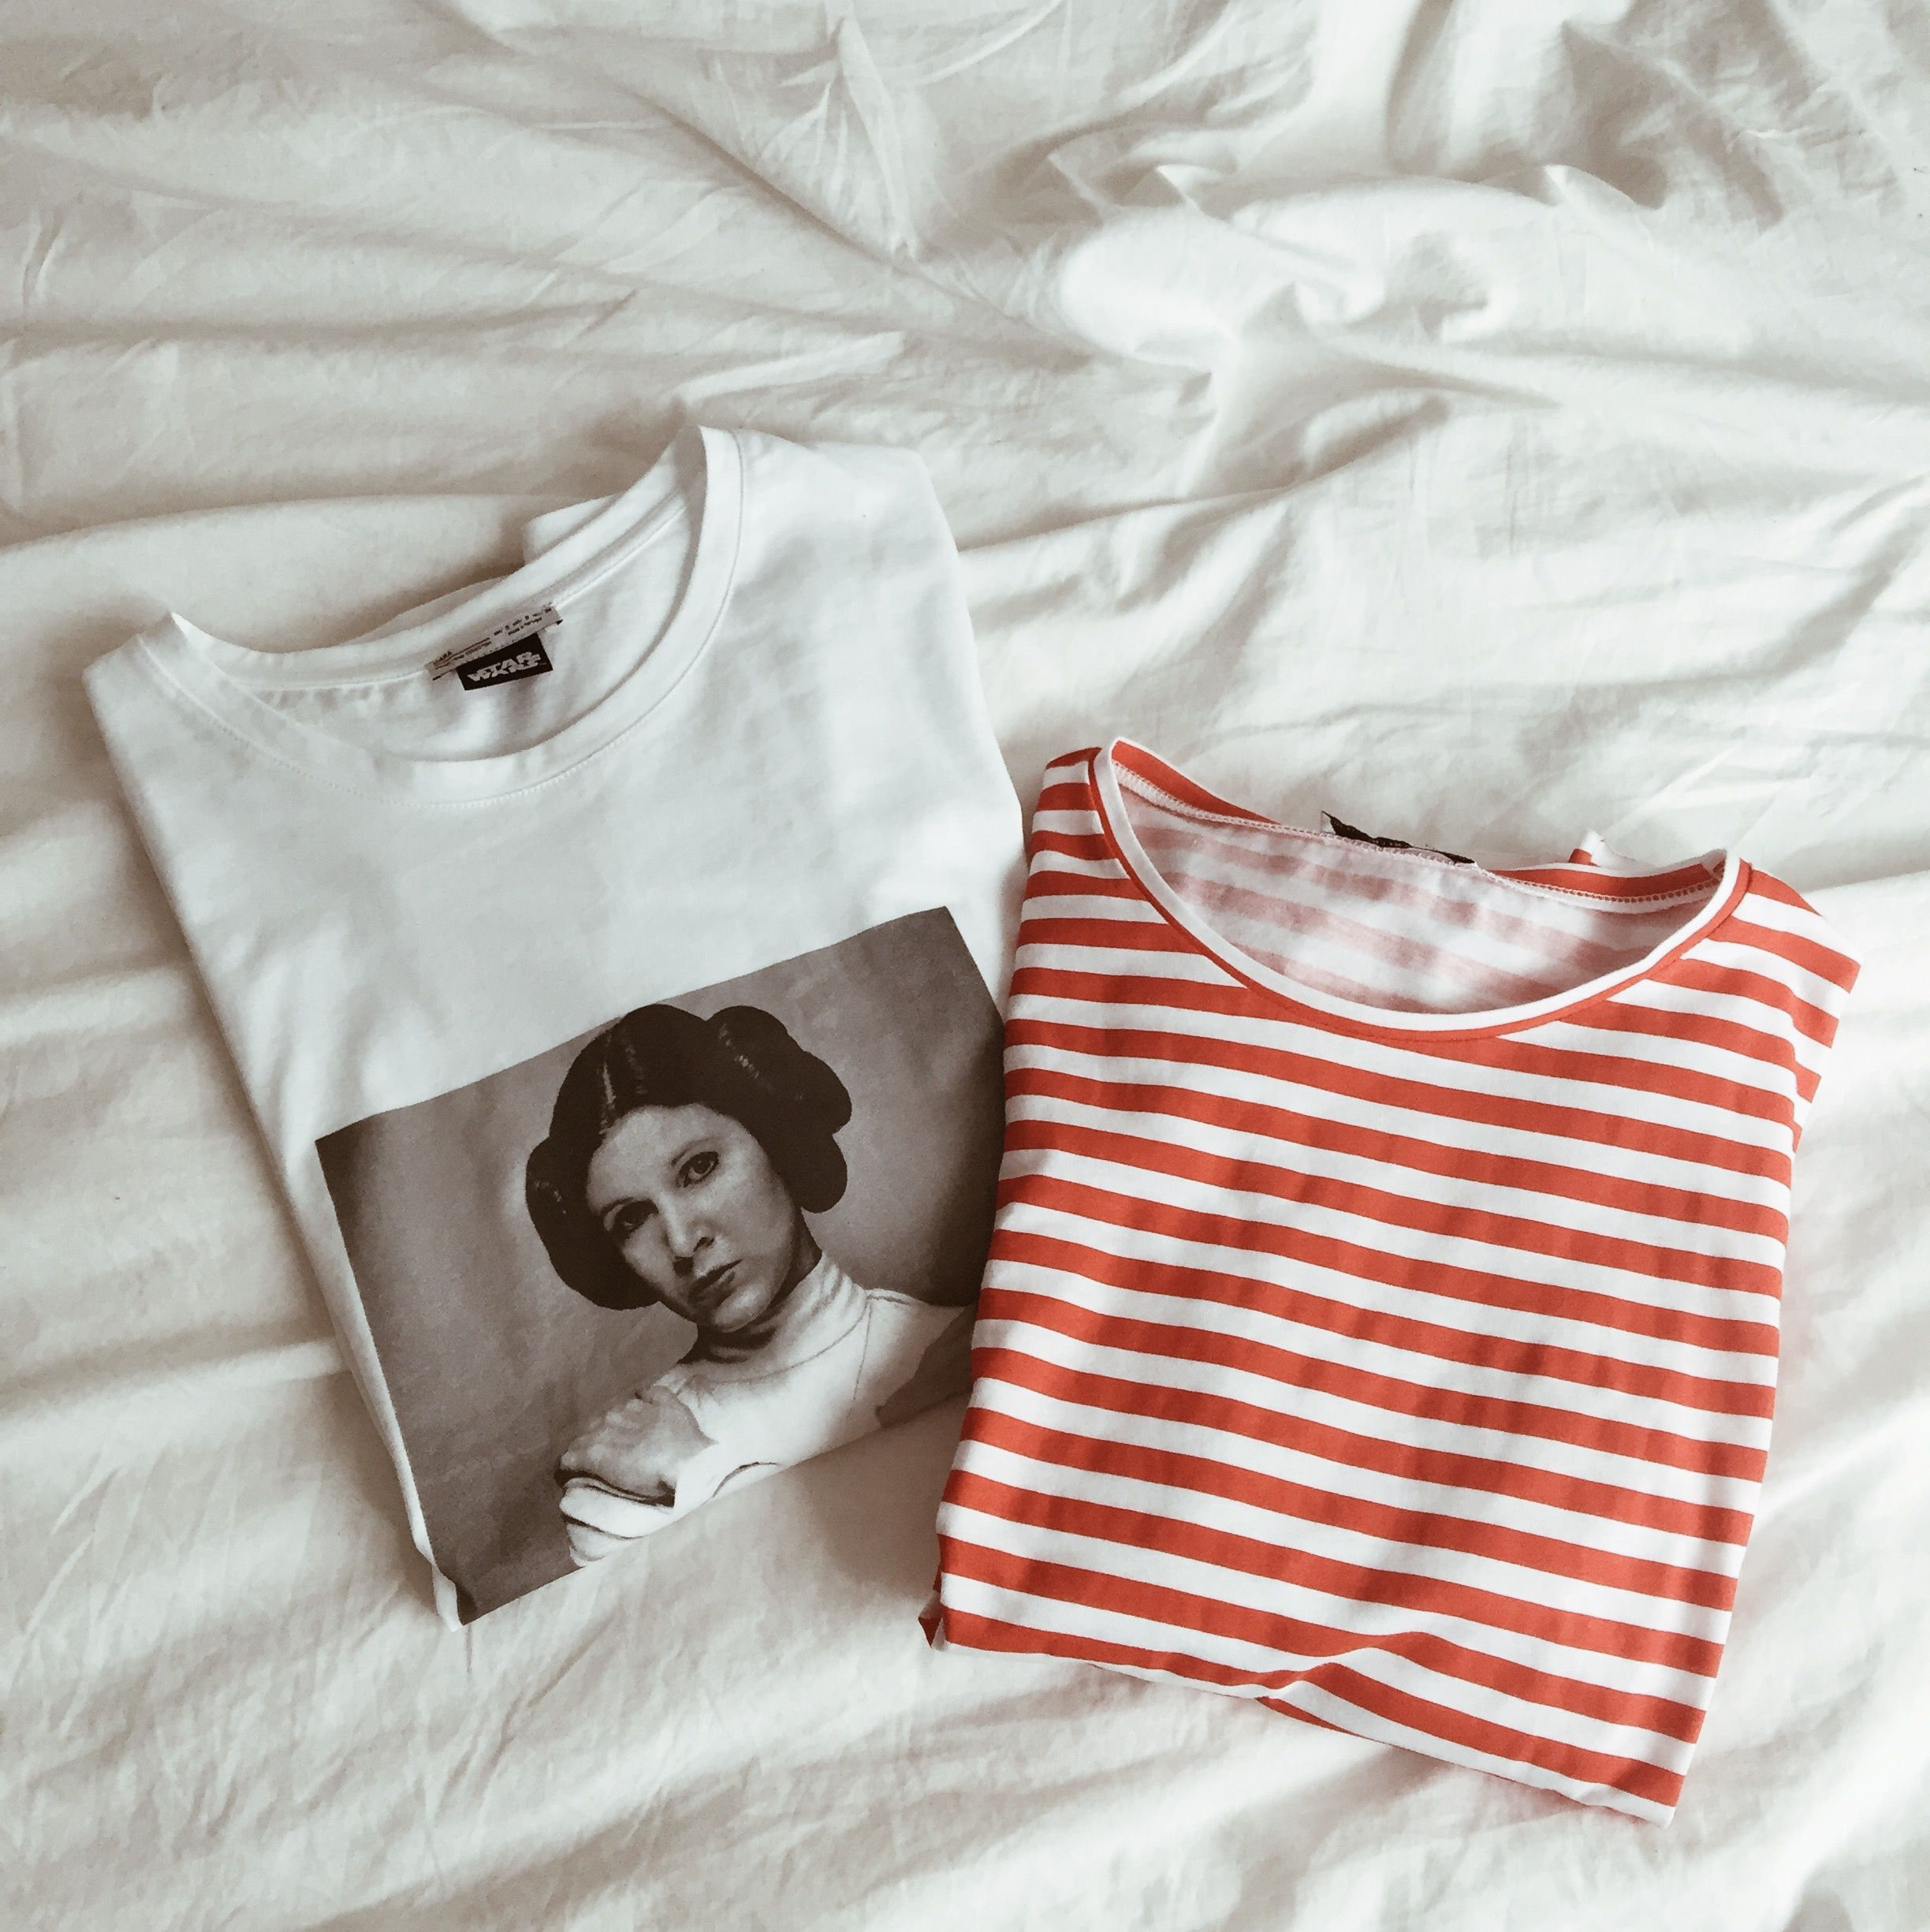 zara, spring, summer, shirts, princess leia, carrie fisher, stripes